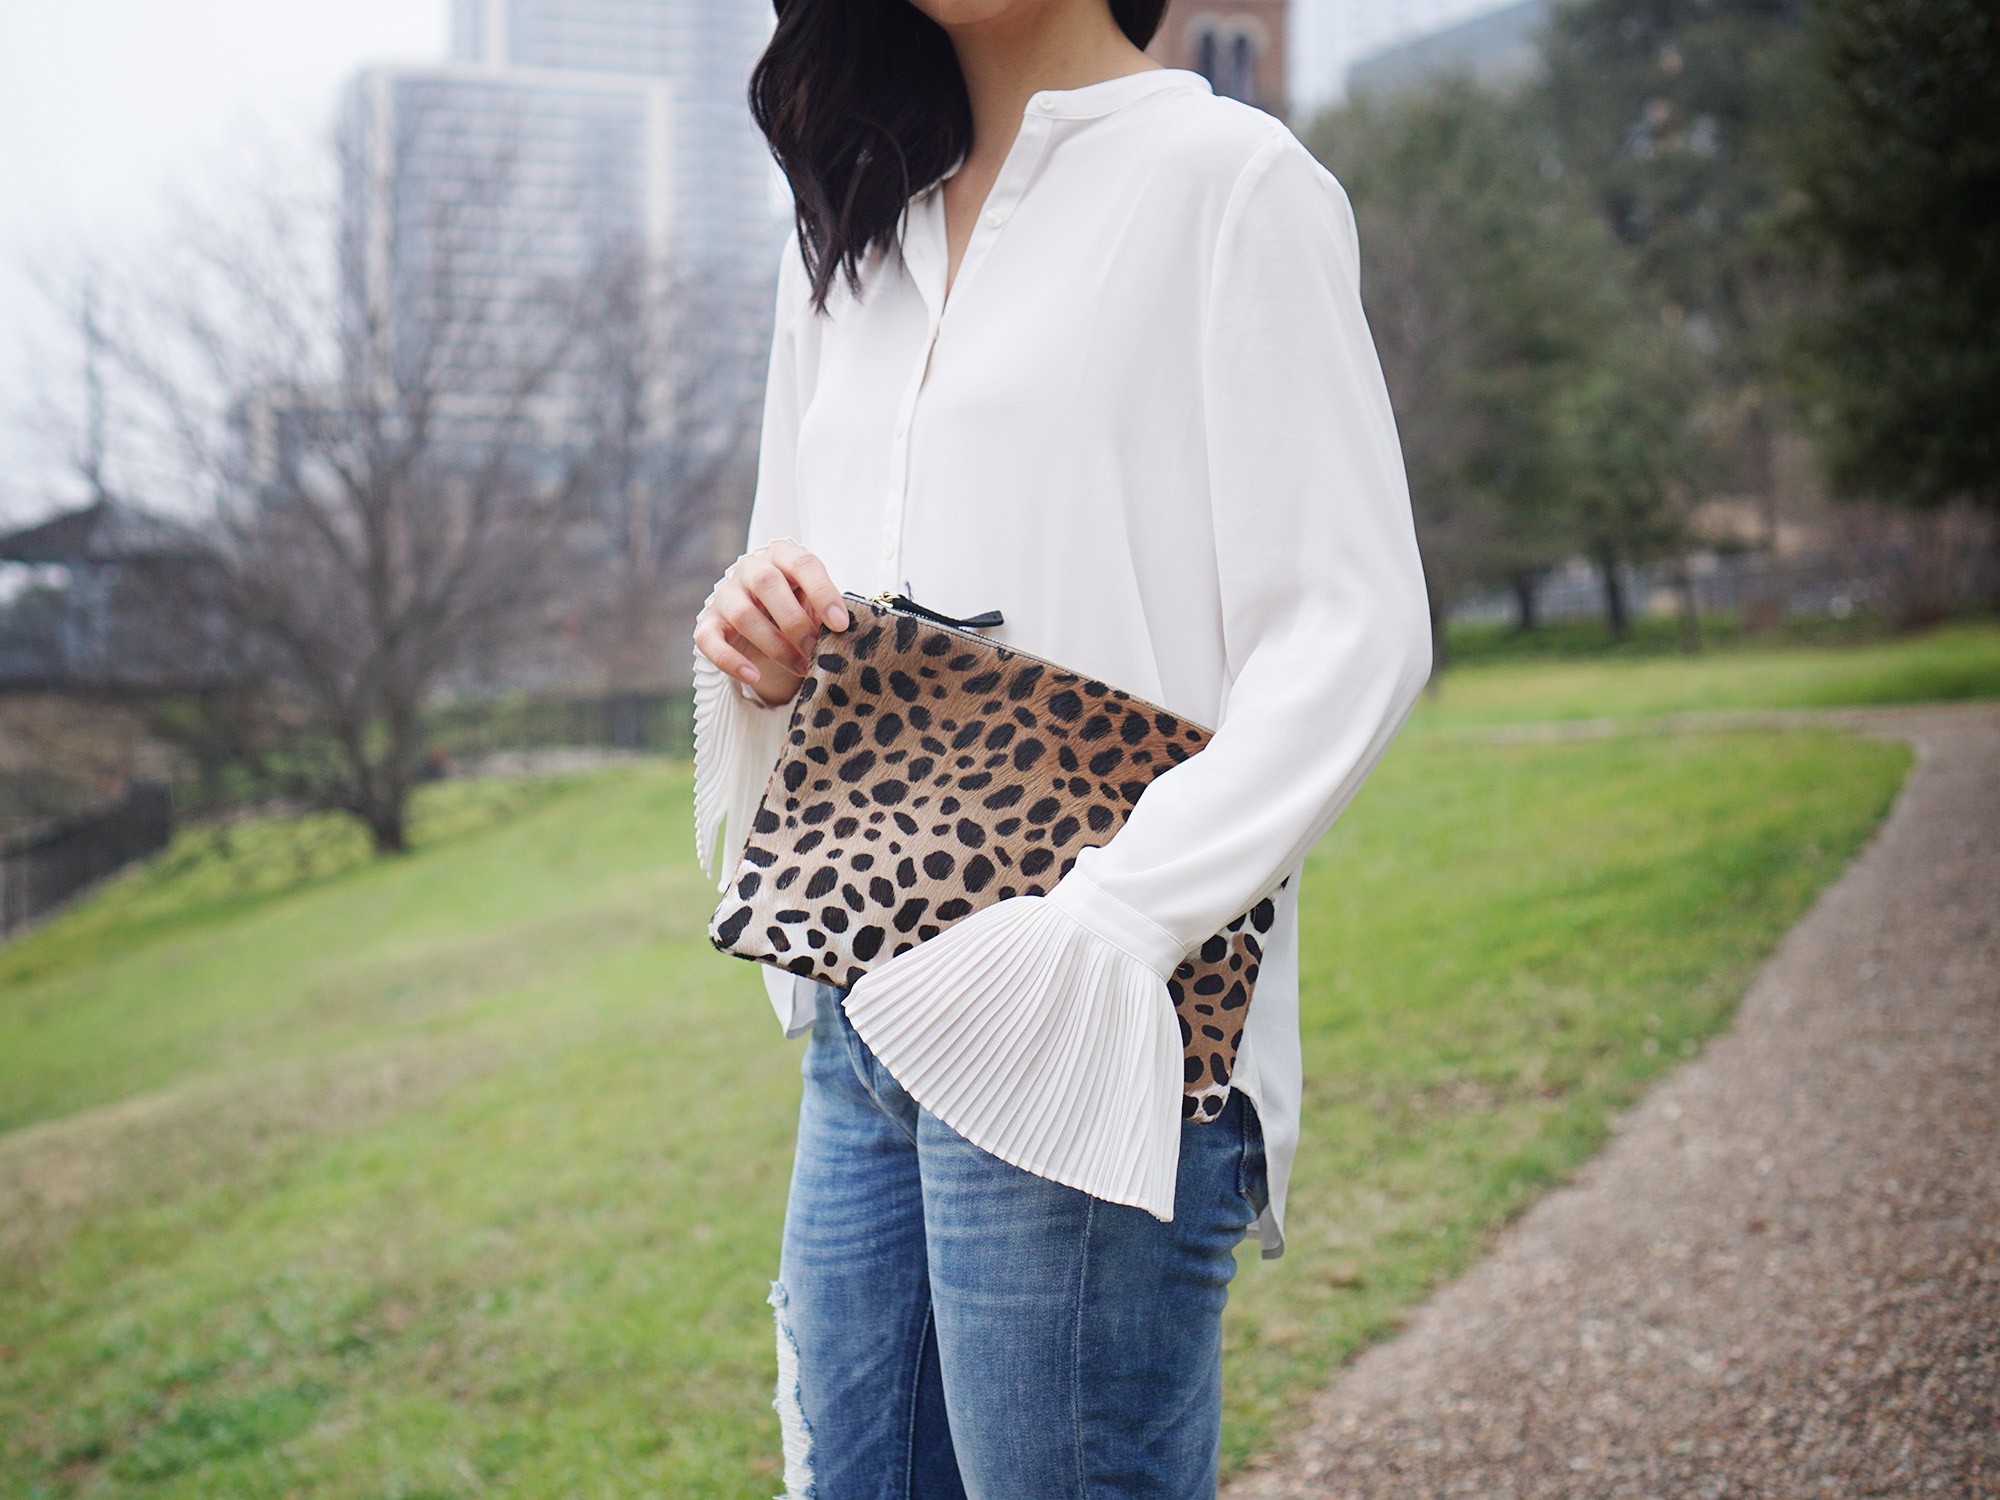 Skirt The Rules / Blouse with Bellsleeves